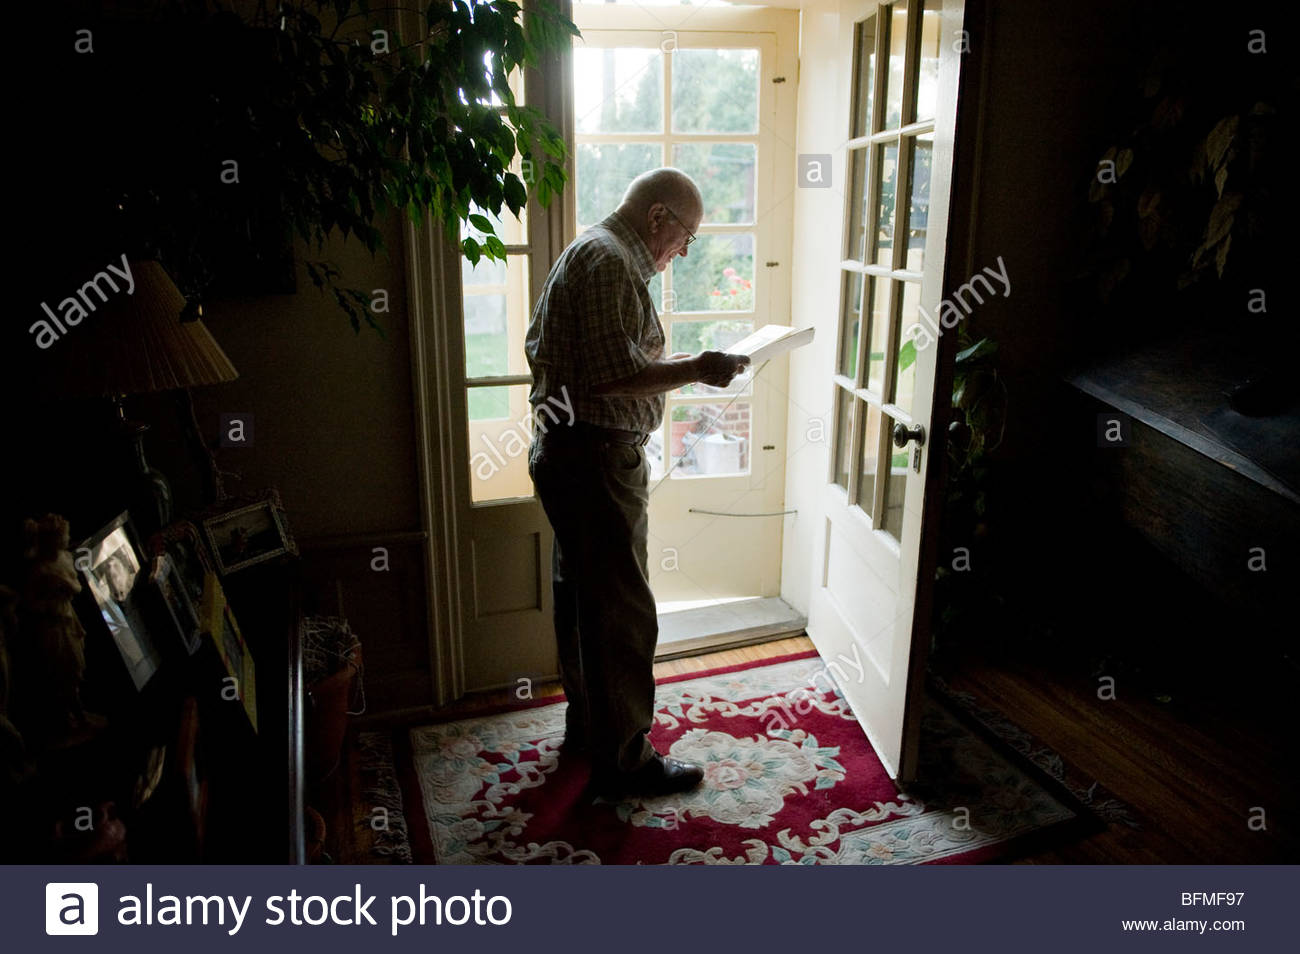 An 80 Year Old Man Uses Natural Light To Read His Birthday Cards